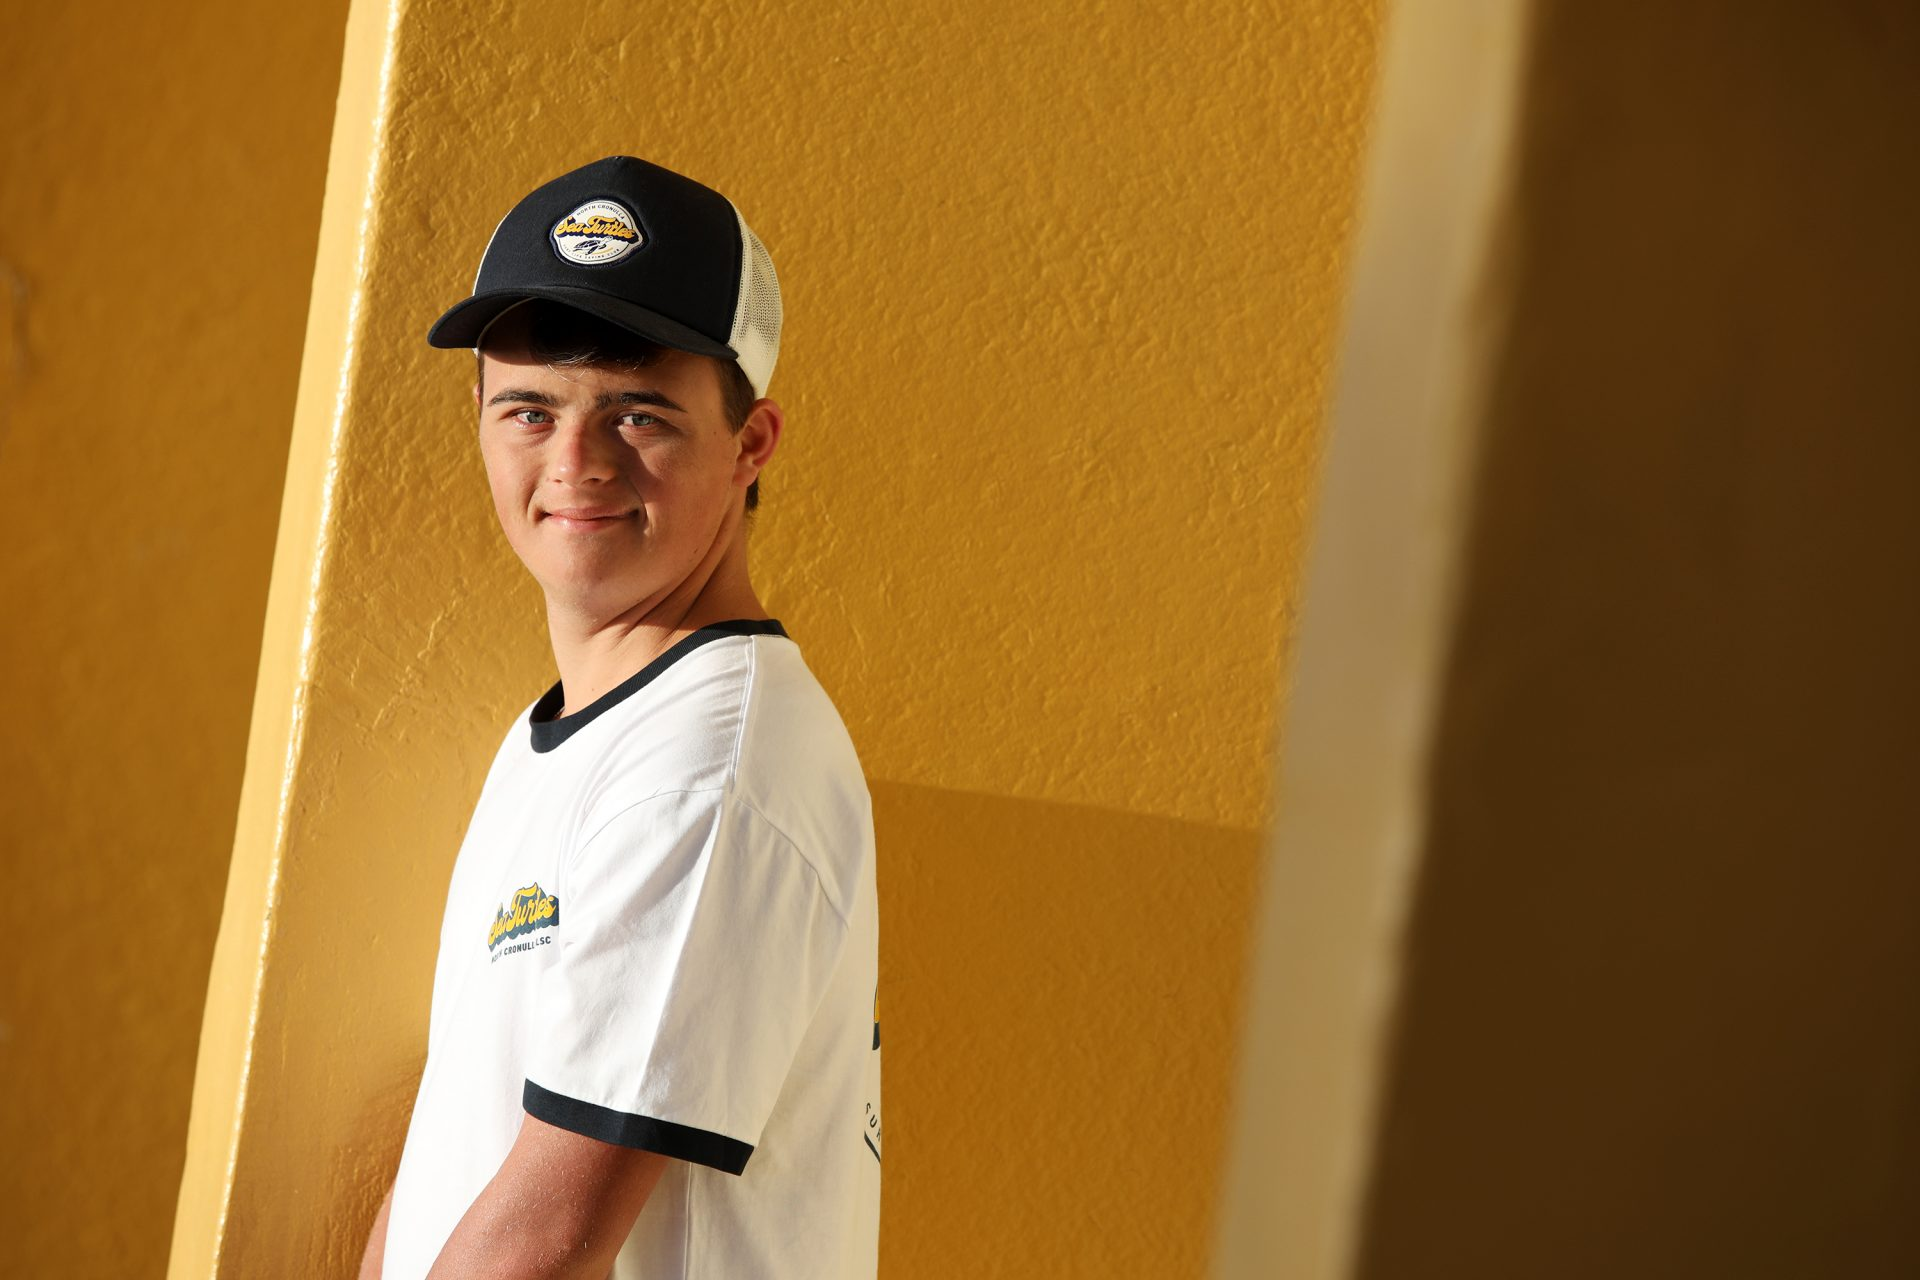 A young man with dark hair and a blue cap smiles at the camera.